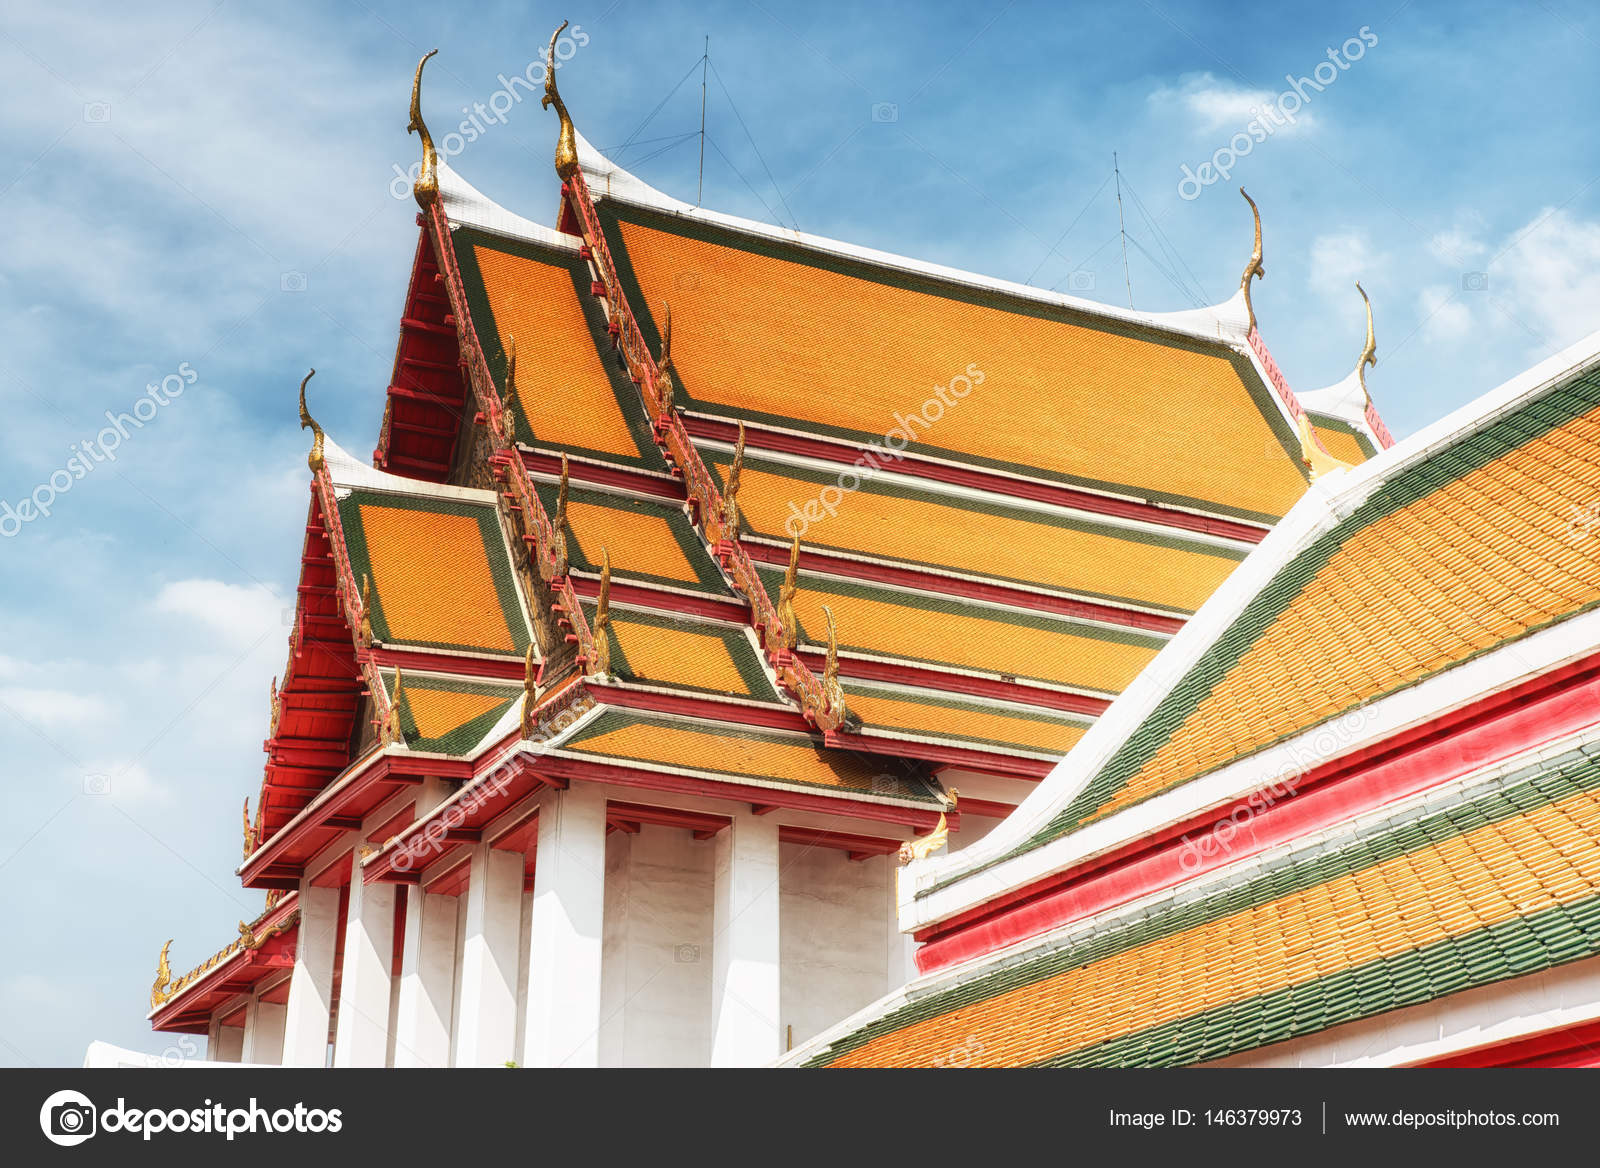 image of famous asian architects architecture amp heritage sites